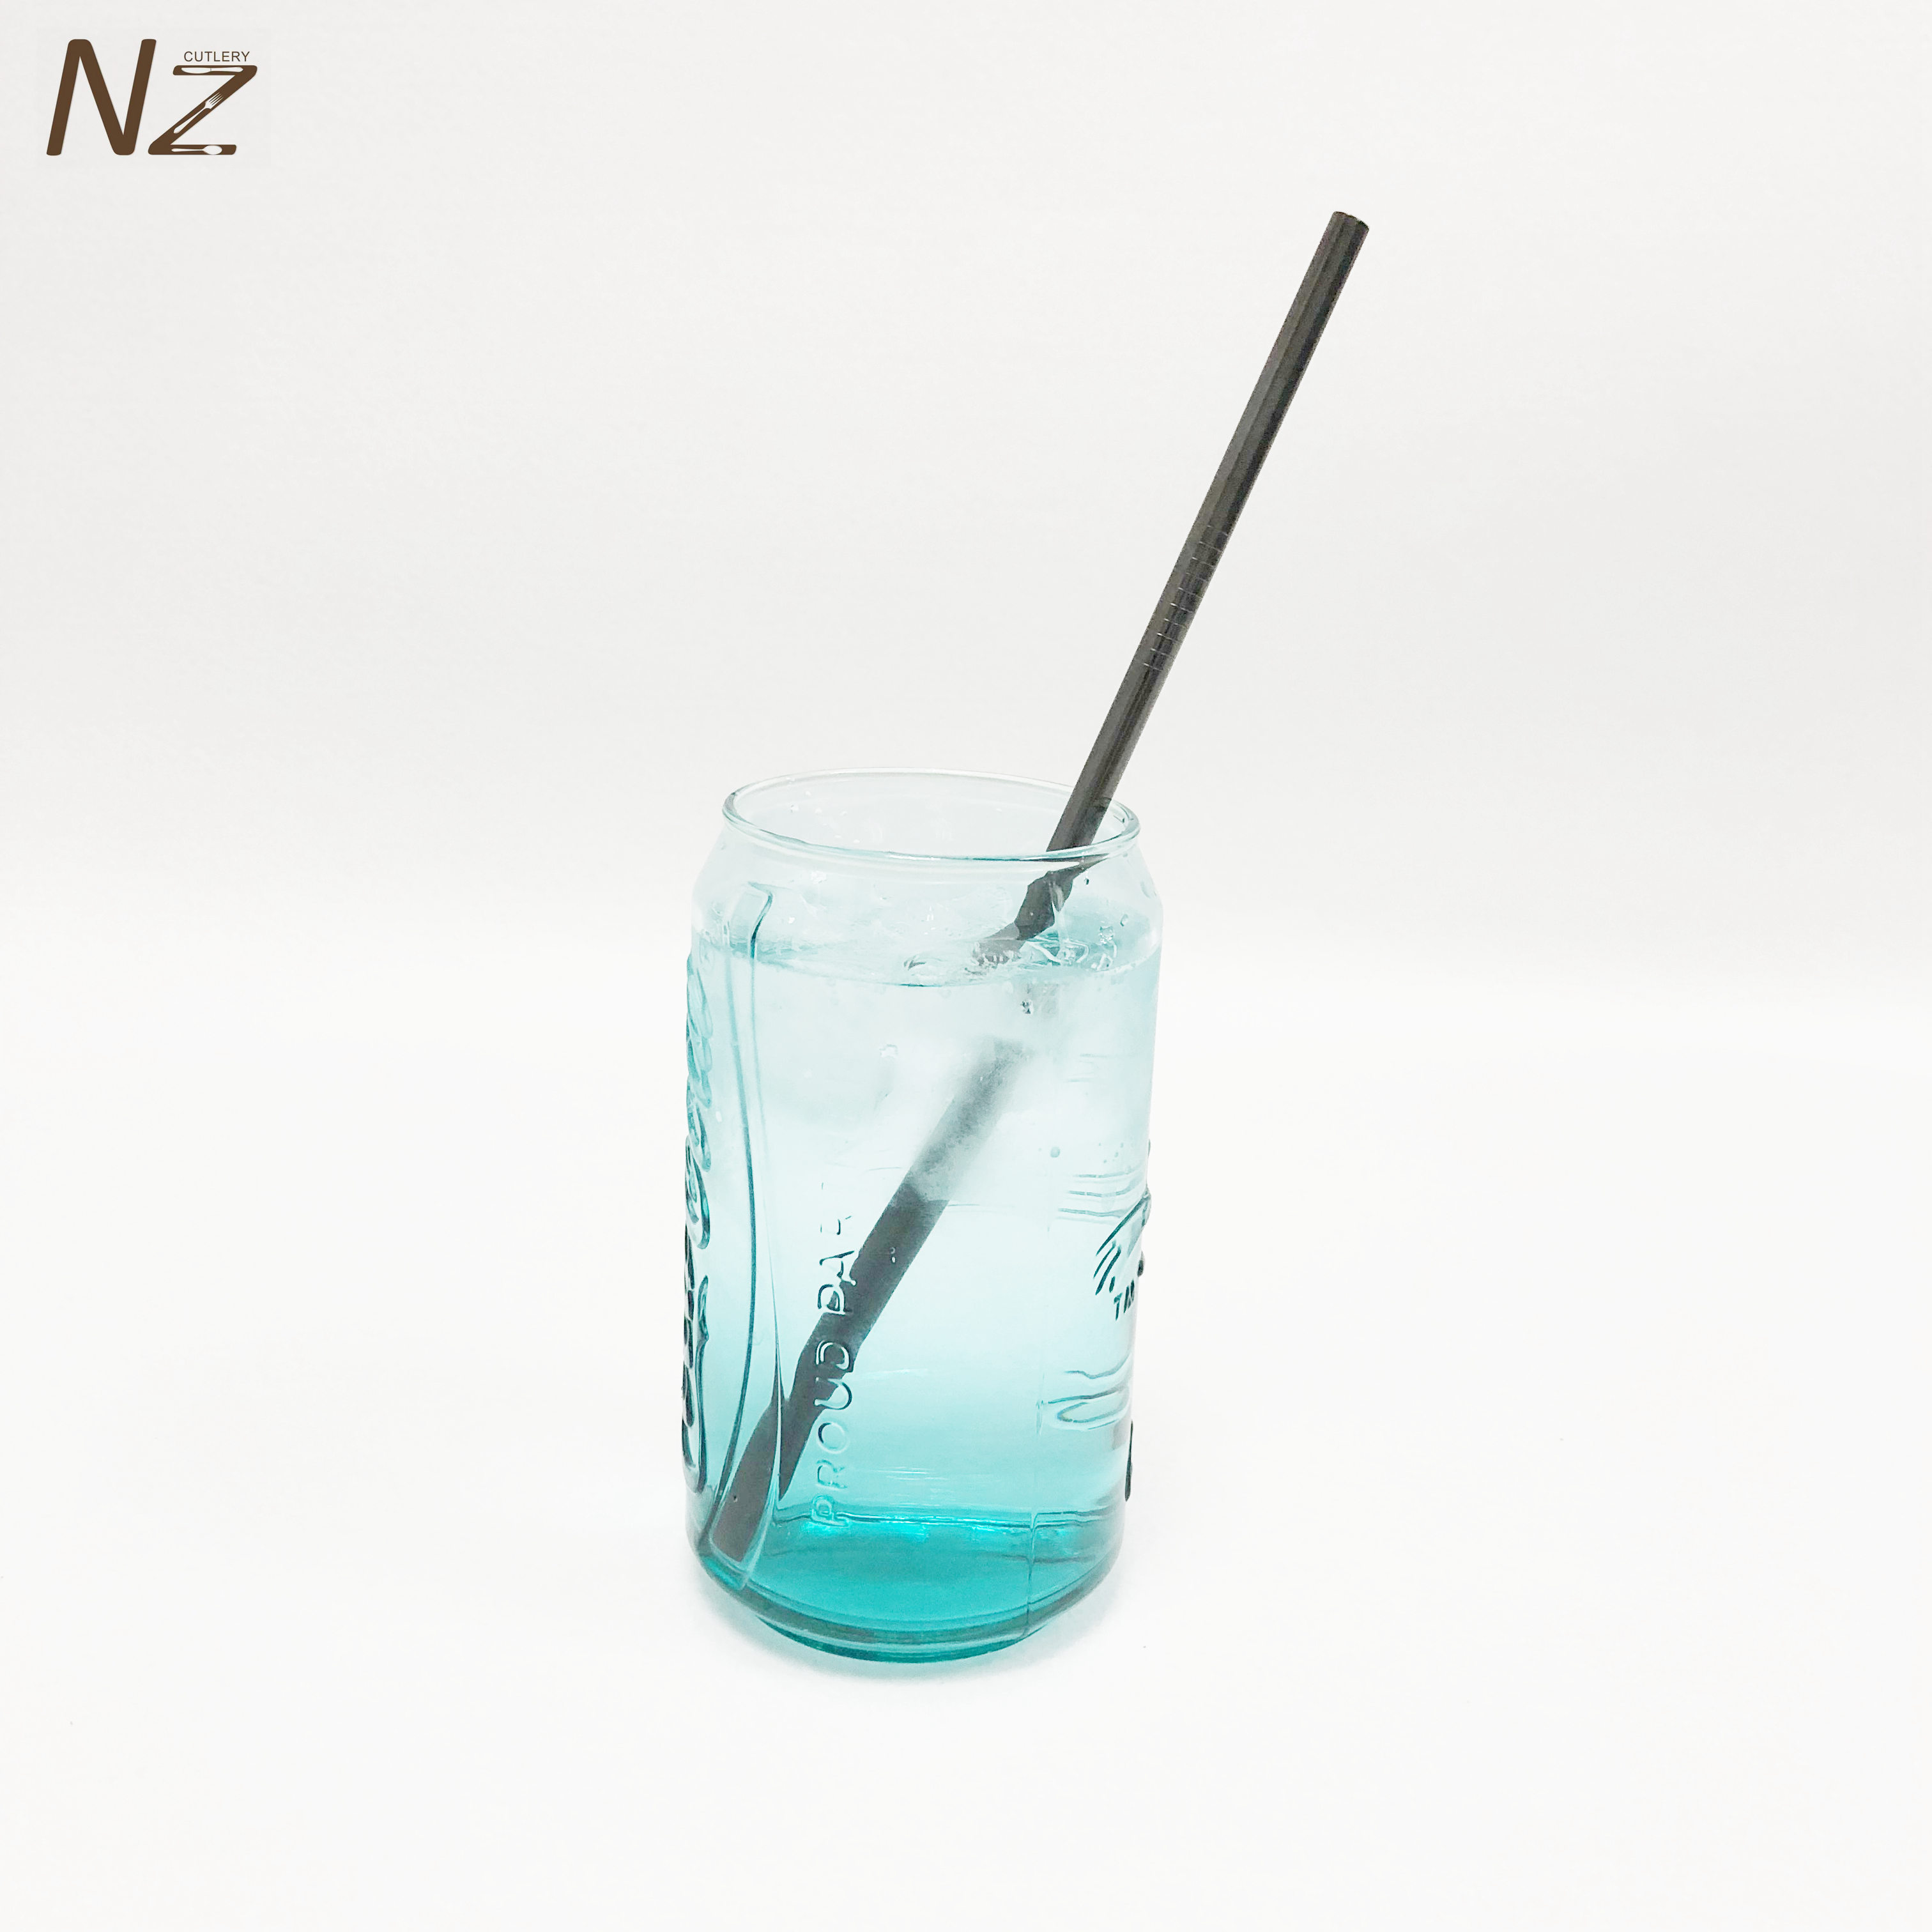 Free sample New Technology 215*6MM 267*6MM Patterned Stainless Steel Metal Smoothie Straw With Cleaning Brush